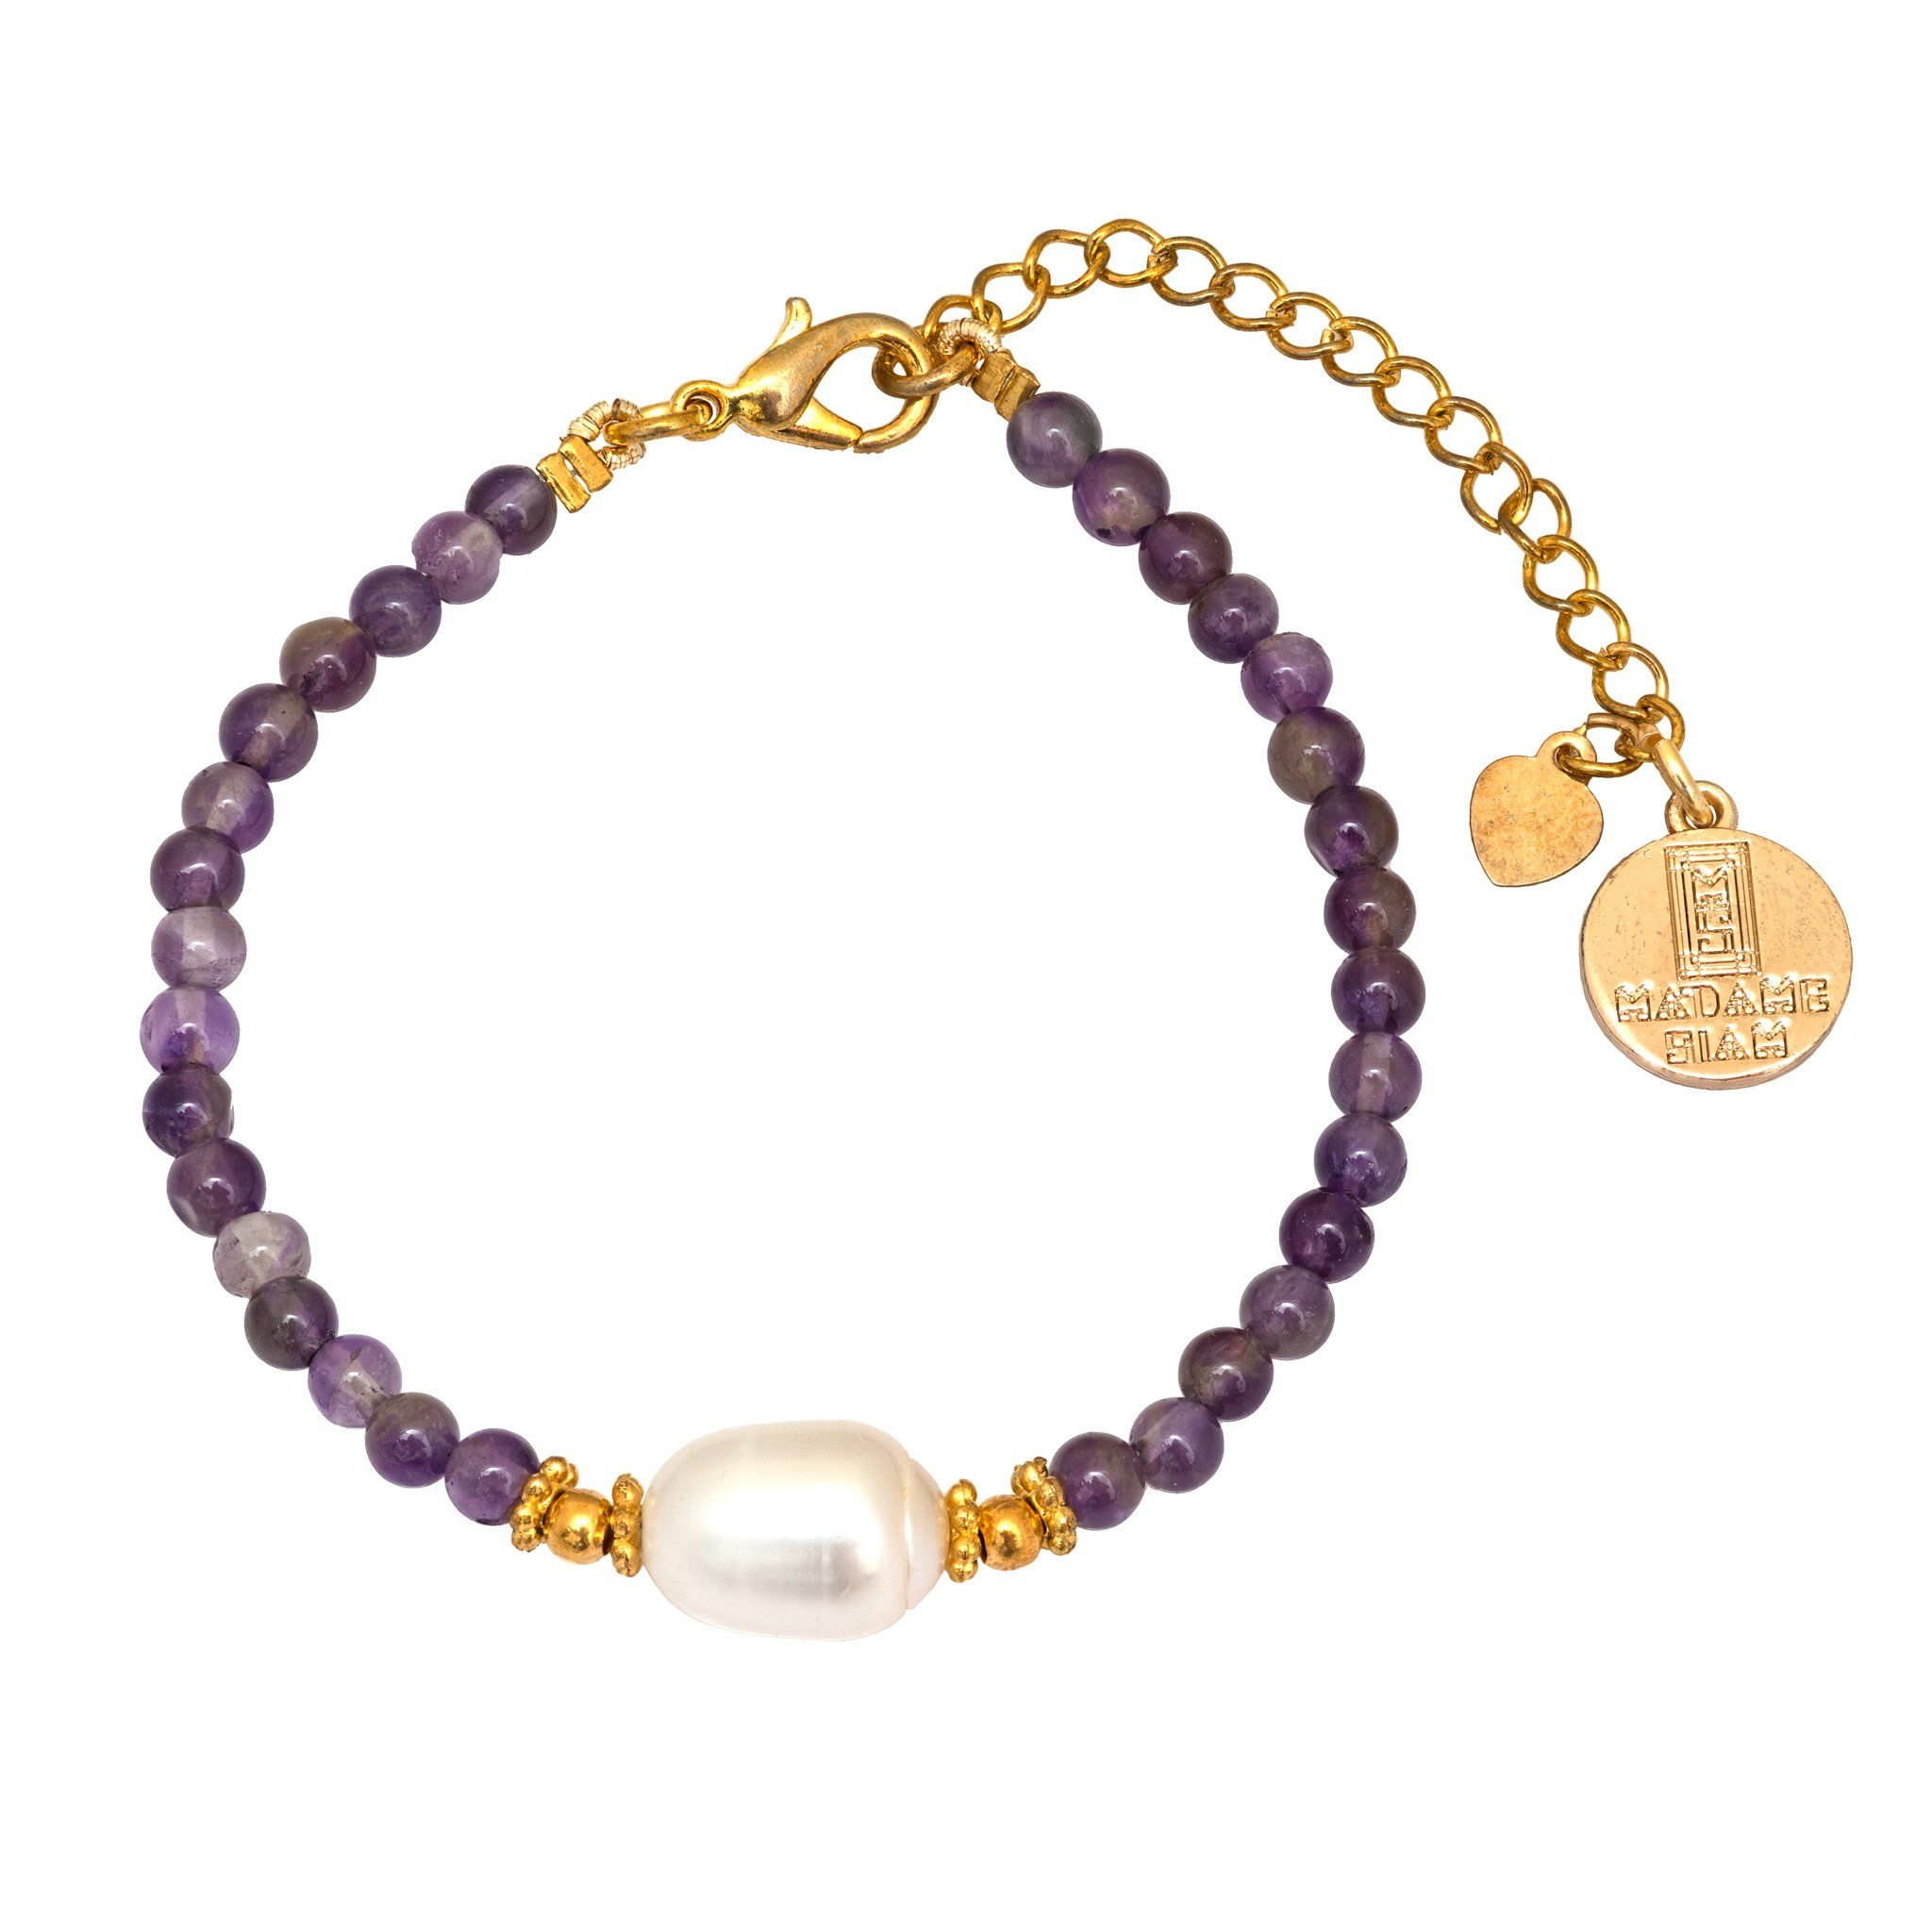 KIMUKA pearls and amethyst bracelet - MadamSiam